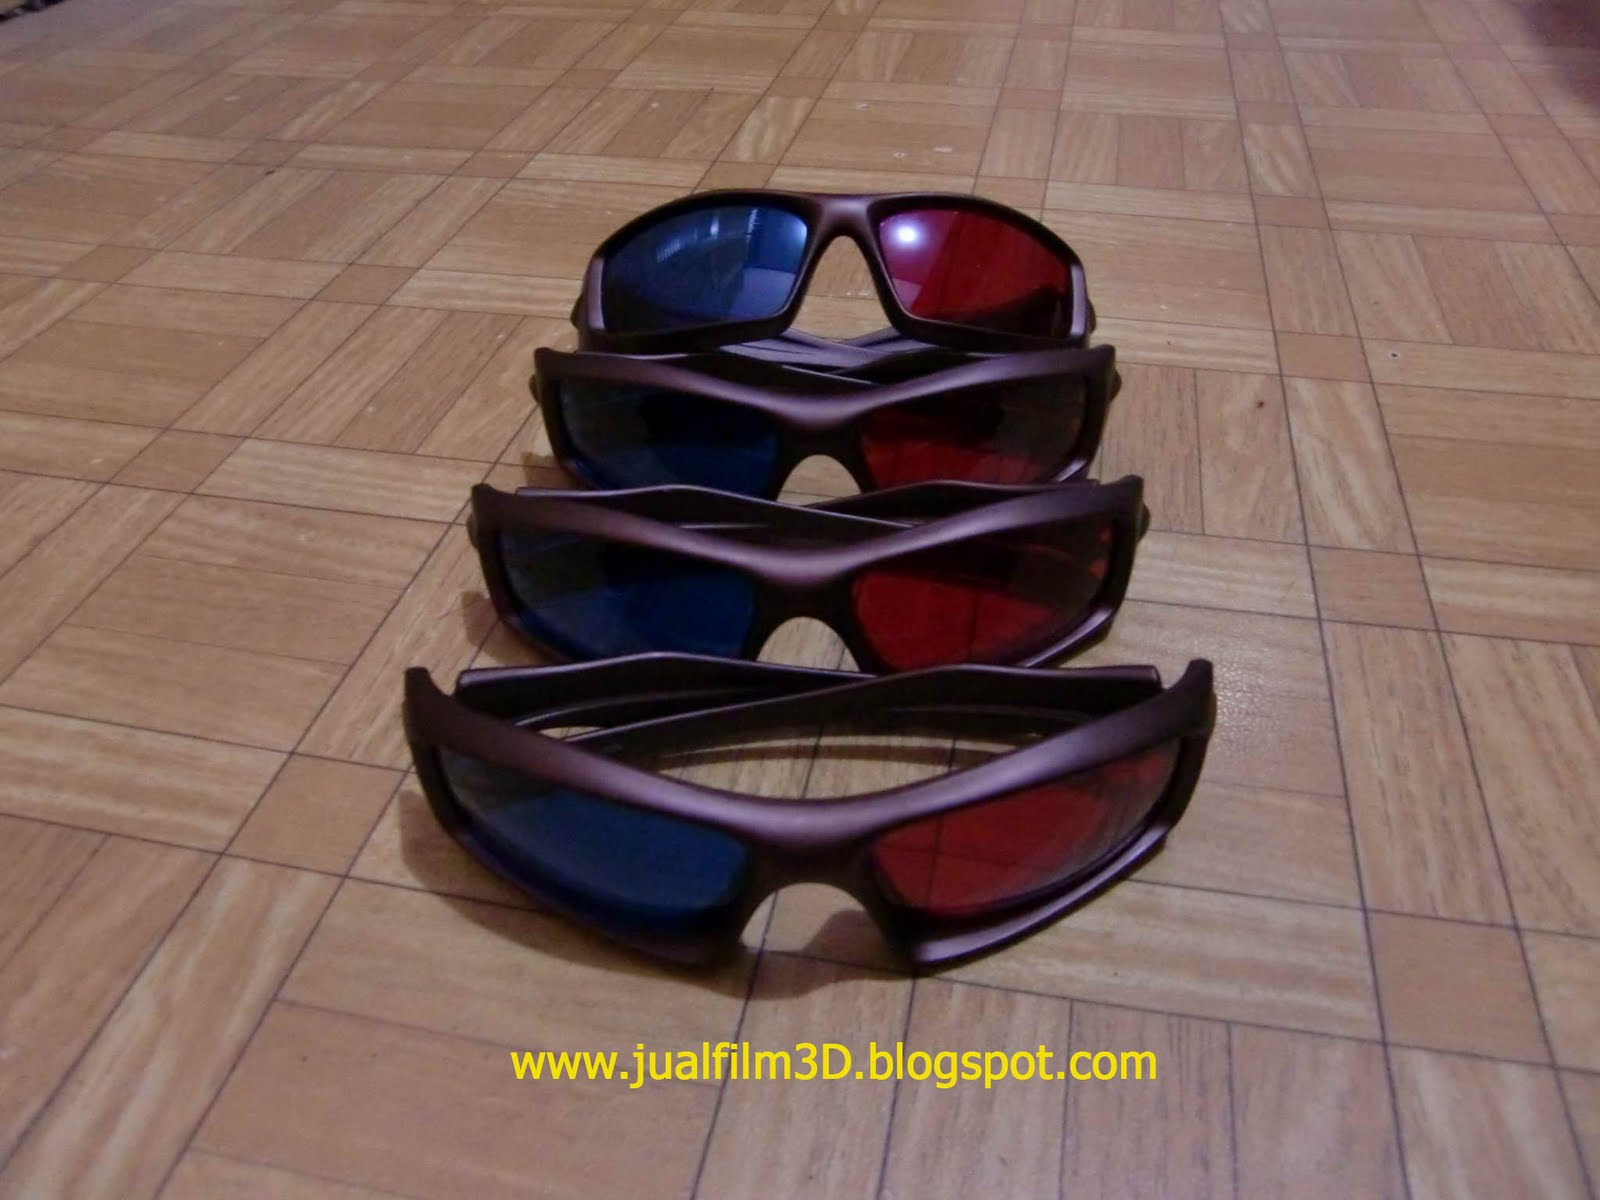 Kacamata 3D Plastik KW1 super (SOLD OUT)